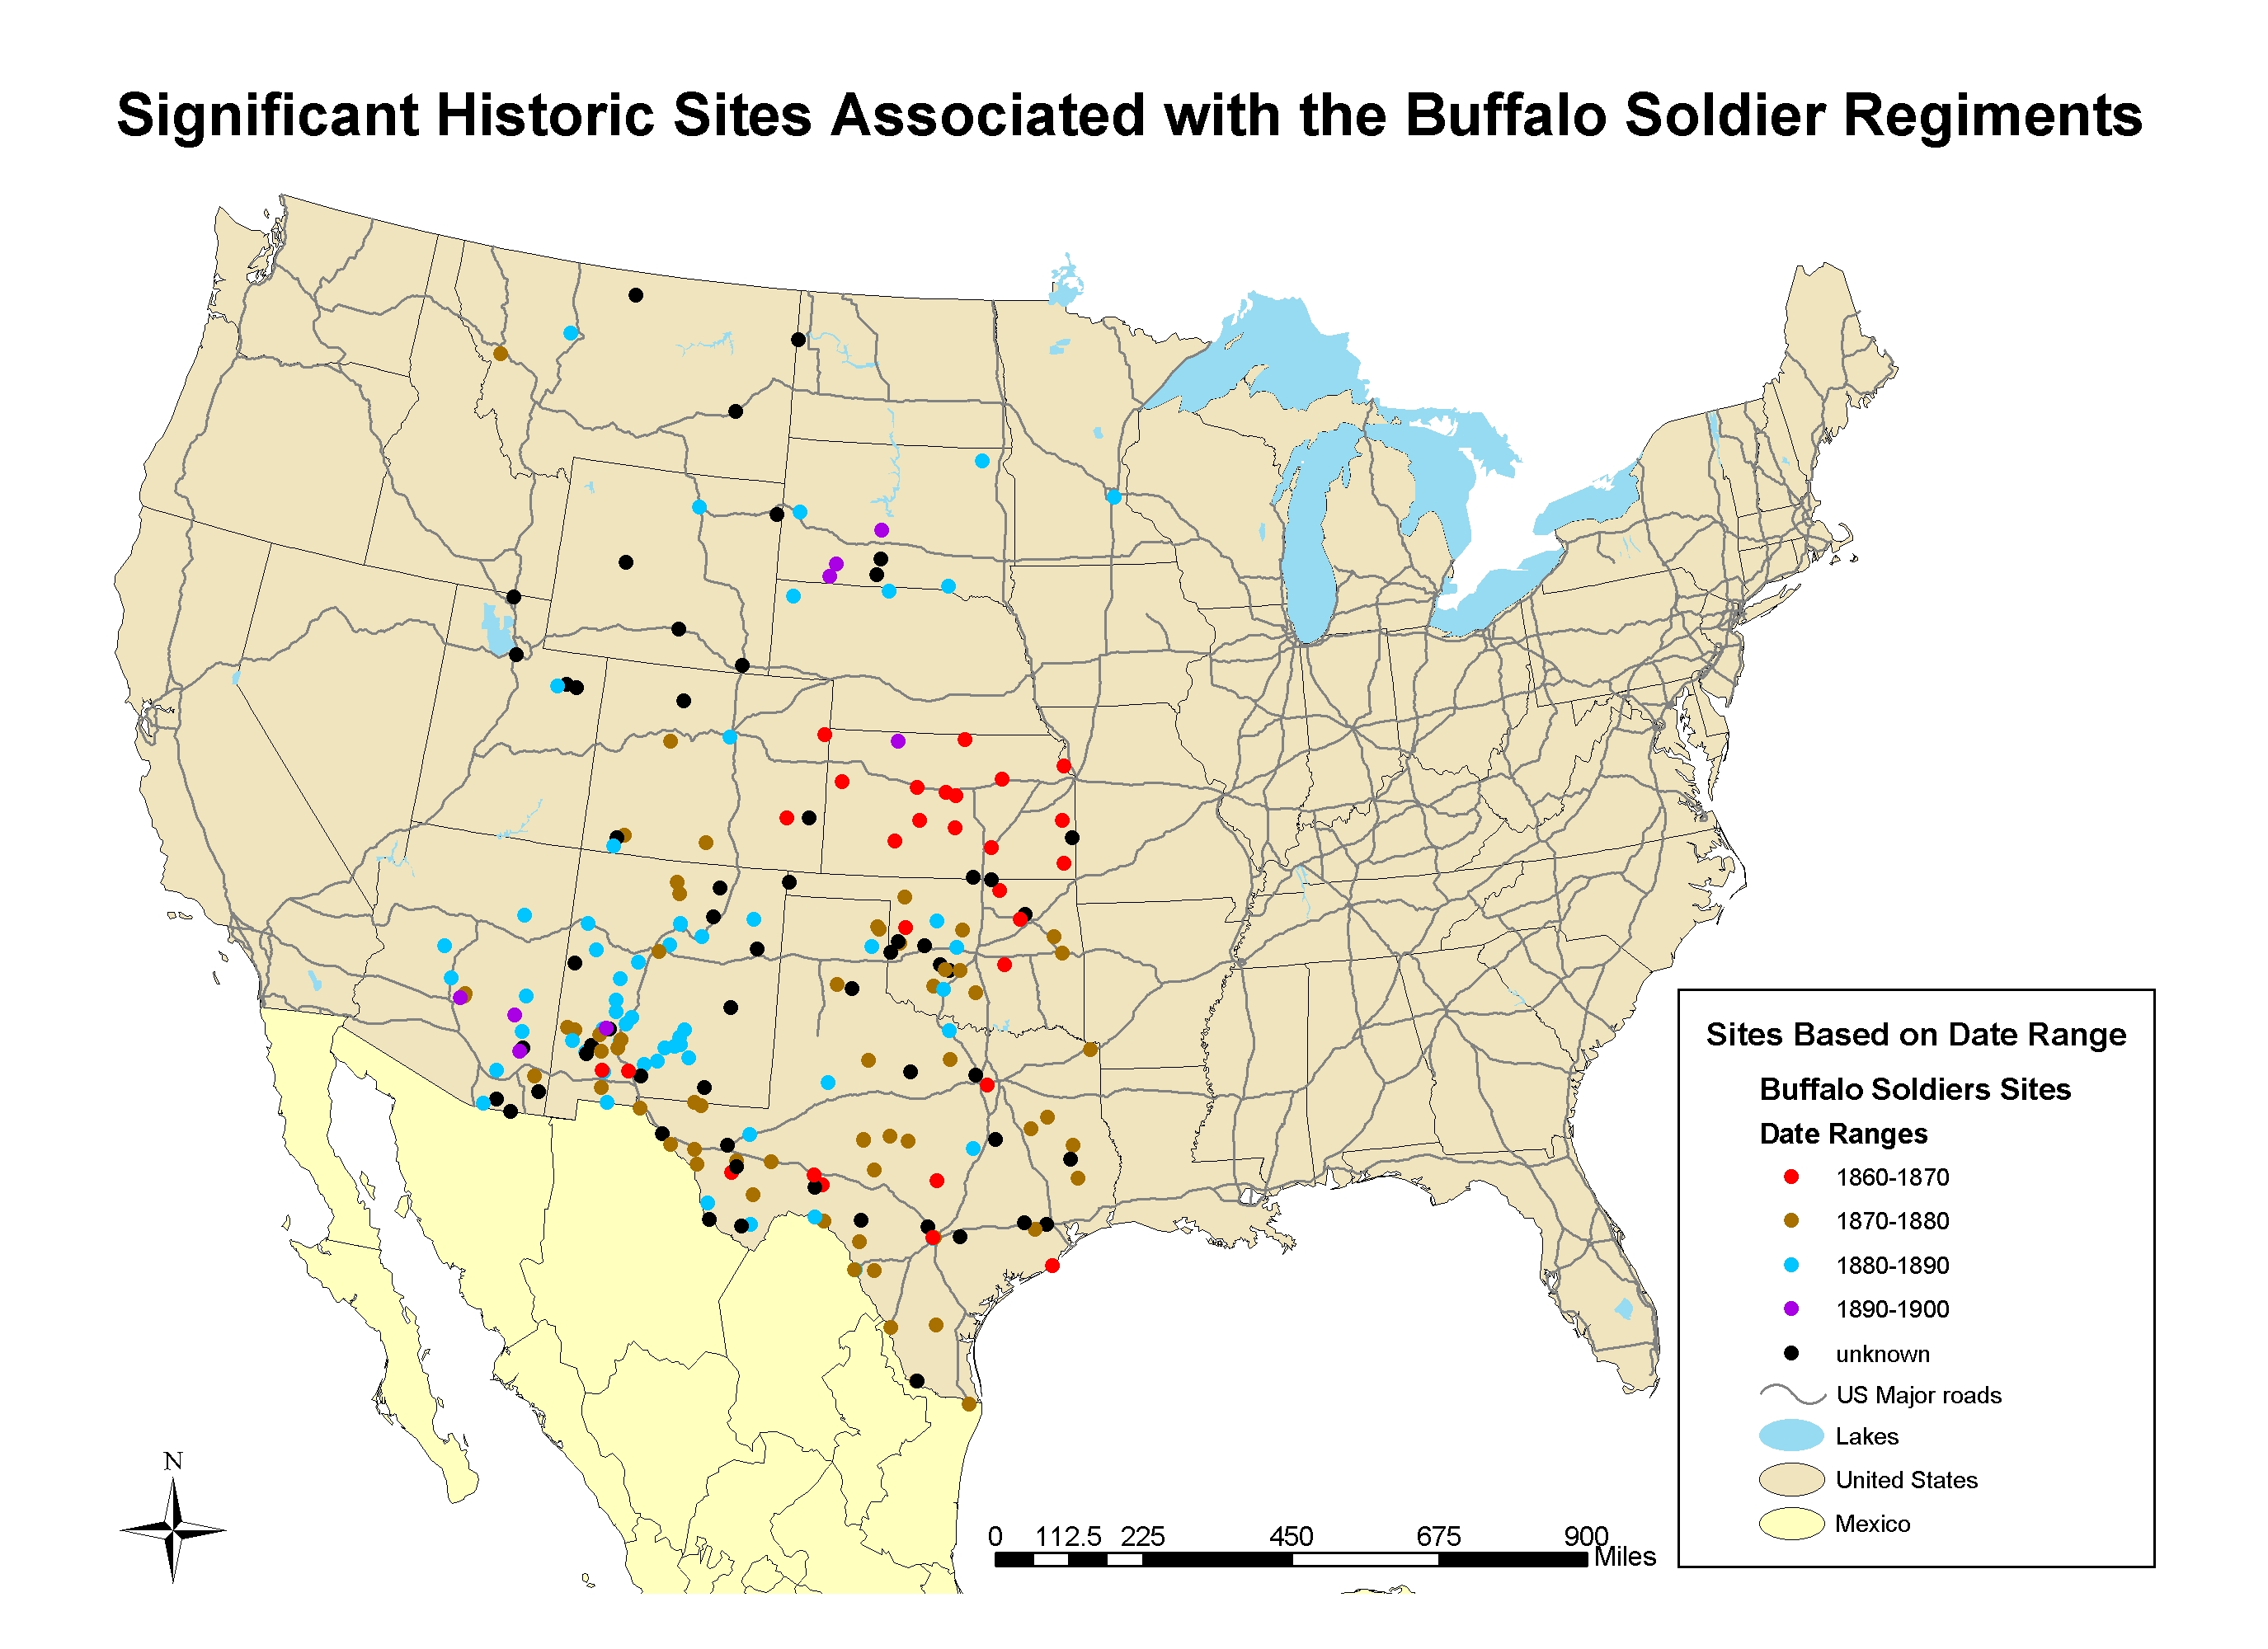 Buffalo Solrs Map Project | HABS/HAER/HALS on us map new york, us map missouri, us map texas, us map ga, us map kansas, us map mn, us map ny, us map ohio, us map md,